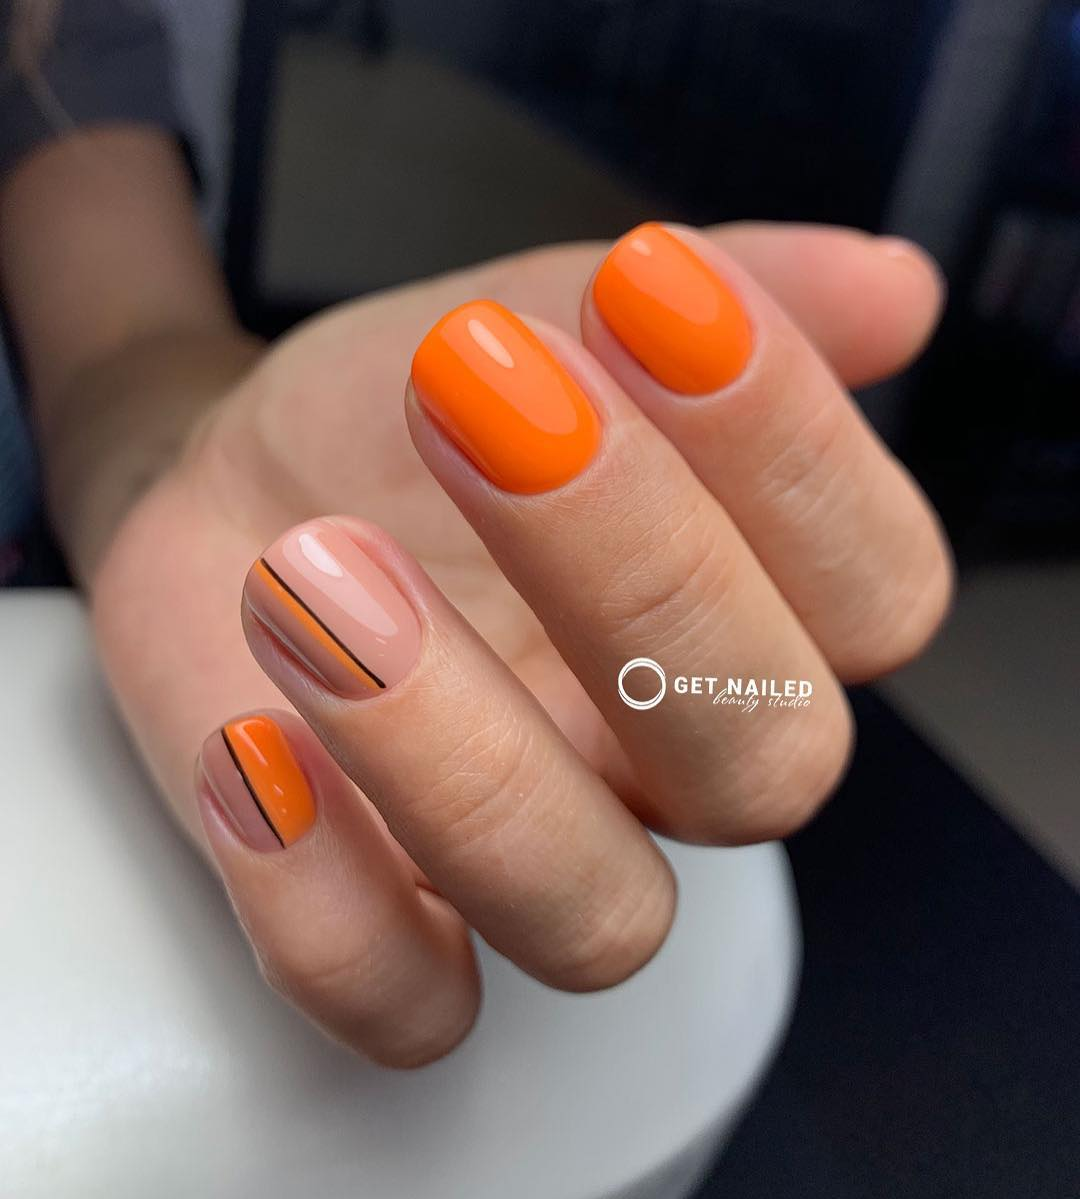 Major color trend this summer  Nails done by KarinaYou can book your appointment on getnailed.co, through DM, WhatsApp +34 680 576 151 or simply by leaving a comment ..luxiogel